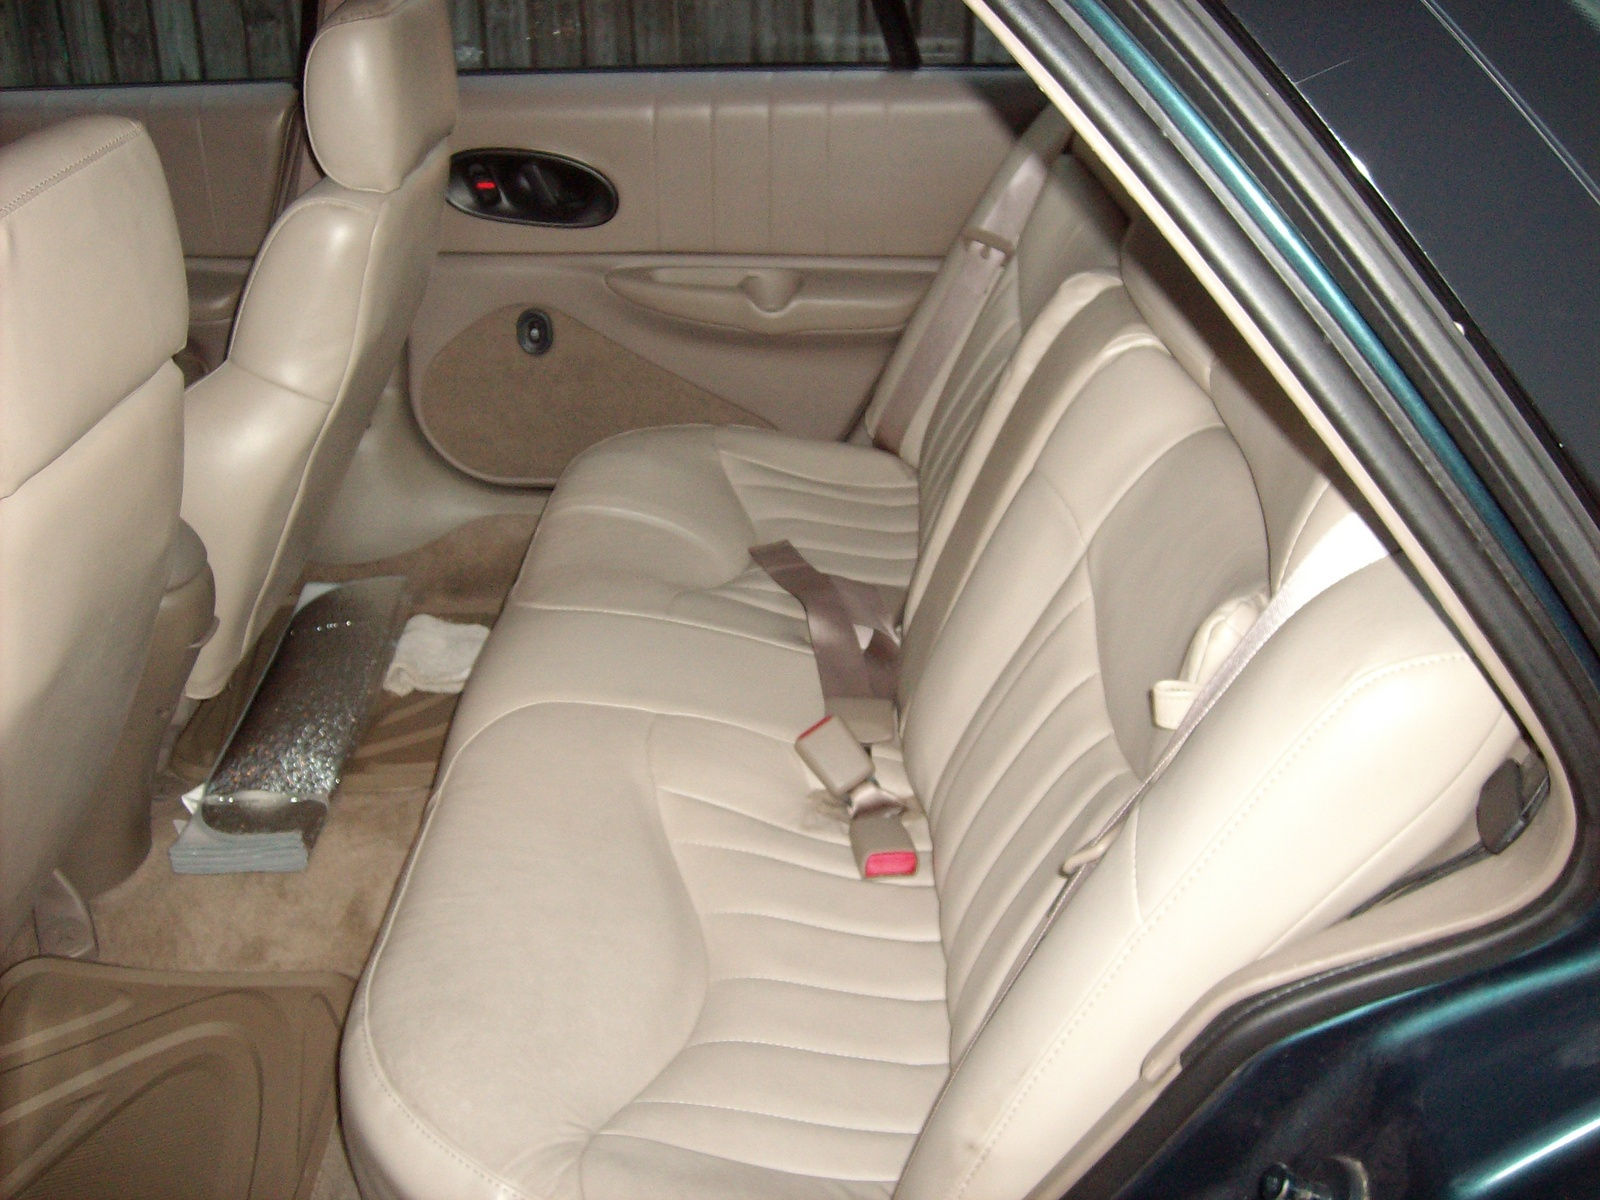 1997 Oldsmobile Cutlass Supreme 4 Dr SL Sedan picture, interior